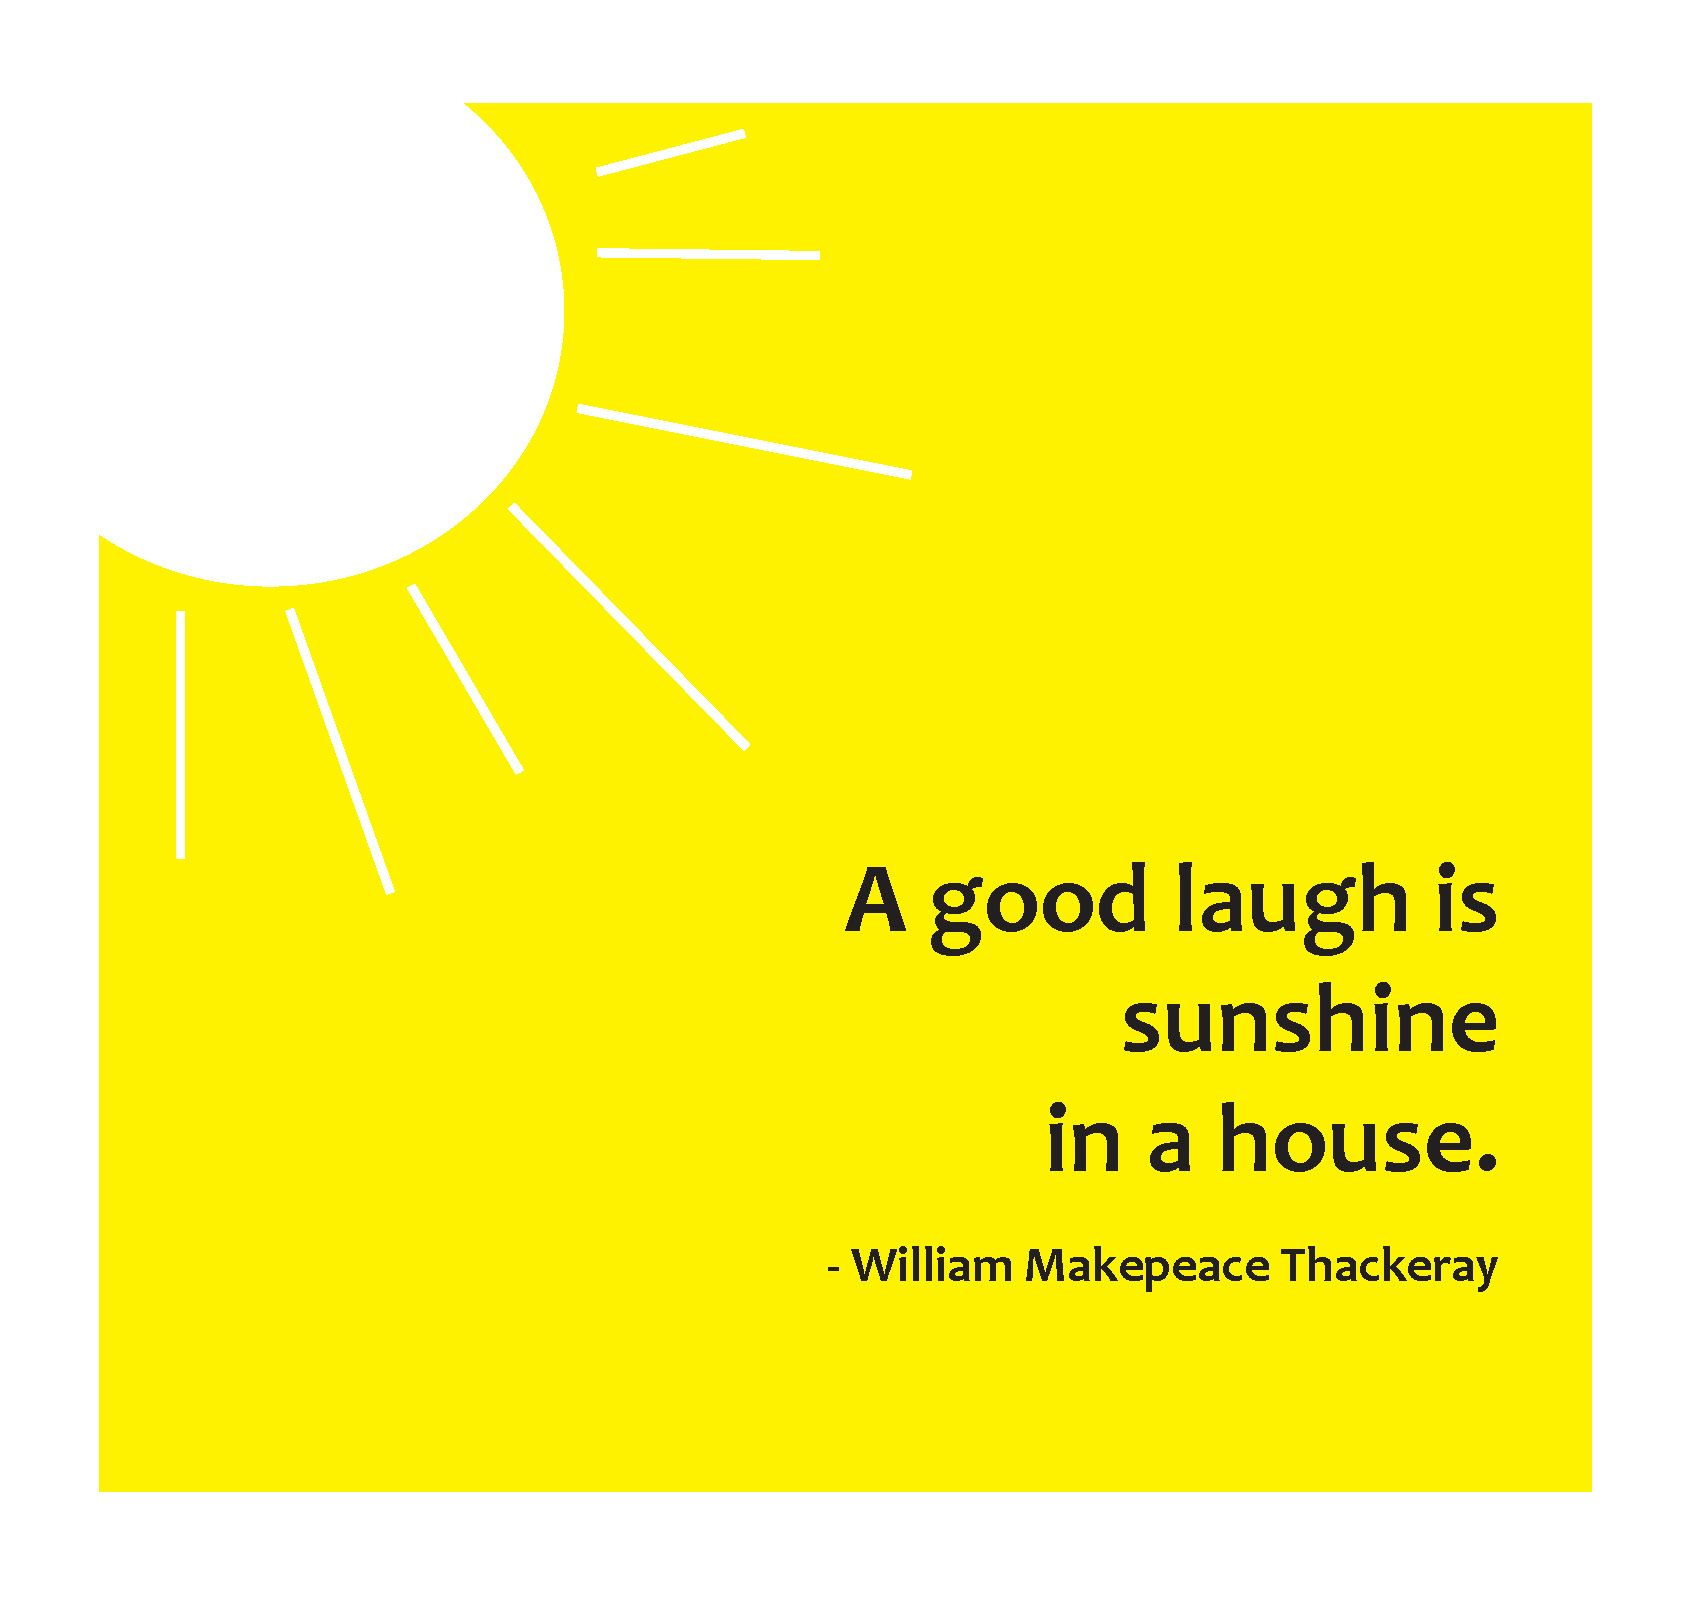 A good laugh is sunshine in a house.